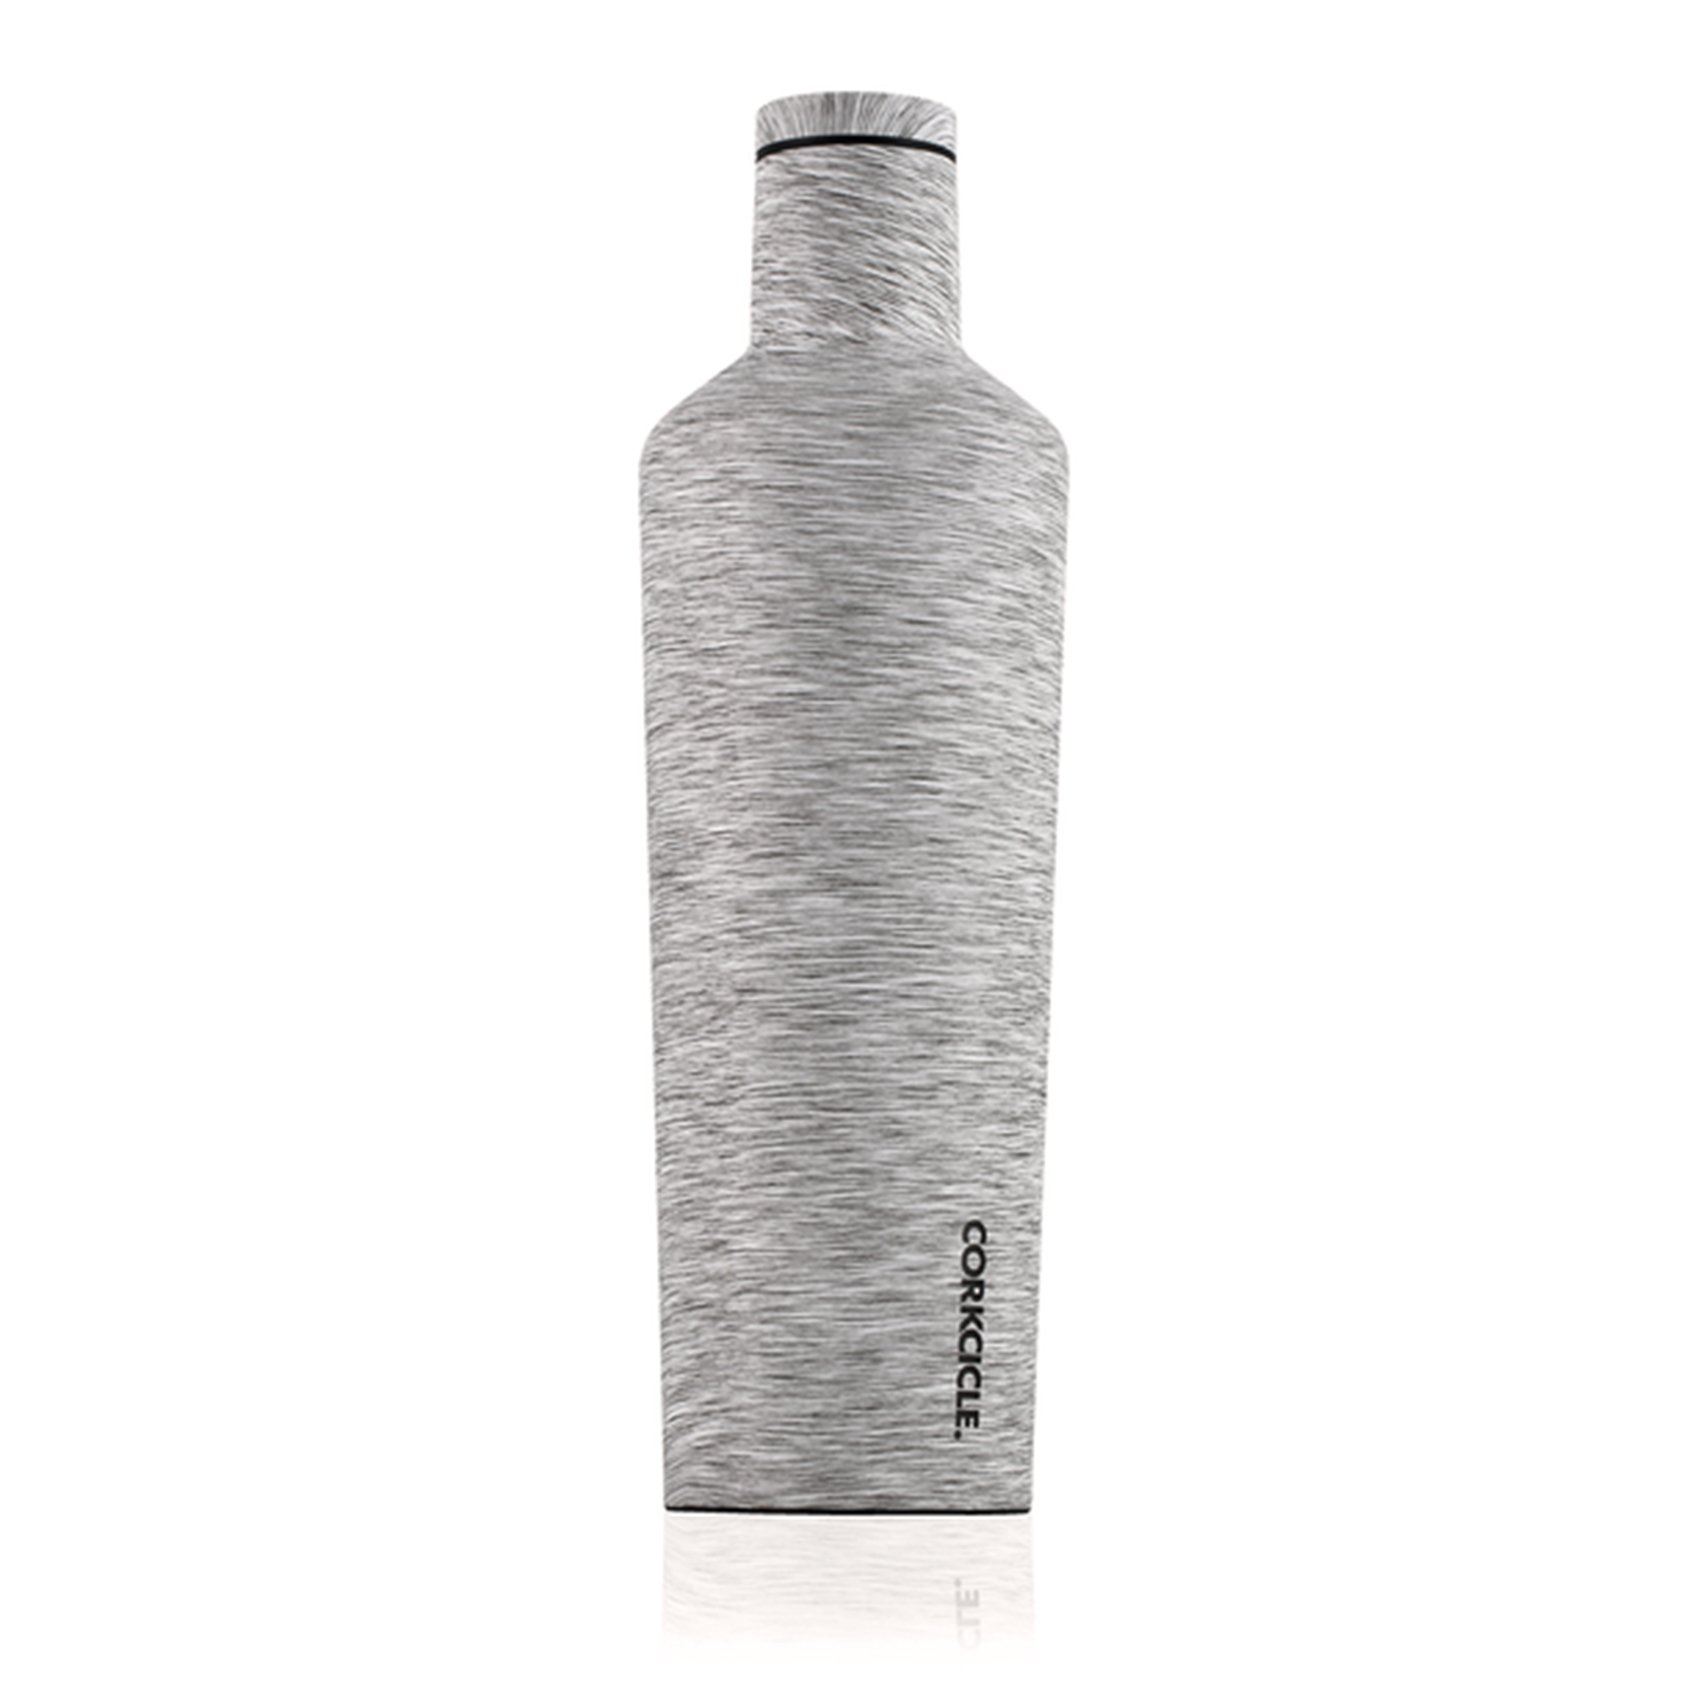 Corkcicle Canteen Heathered Collection-Water Bottle & Thermos-Triple Insulated Shatterproof Stainless Steel, Heathered Grey, 25 oz